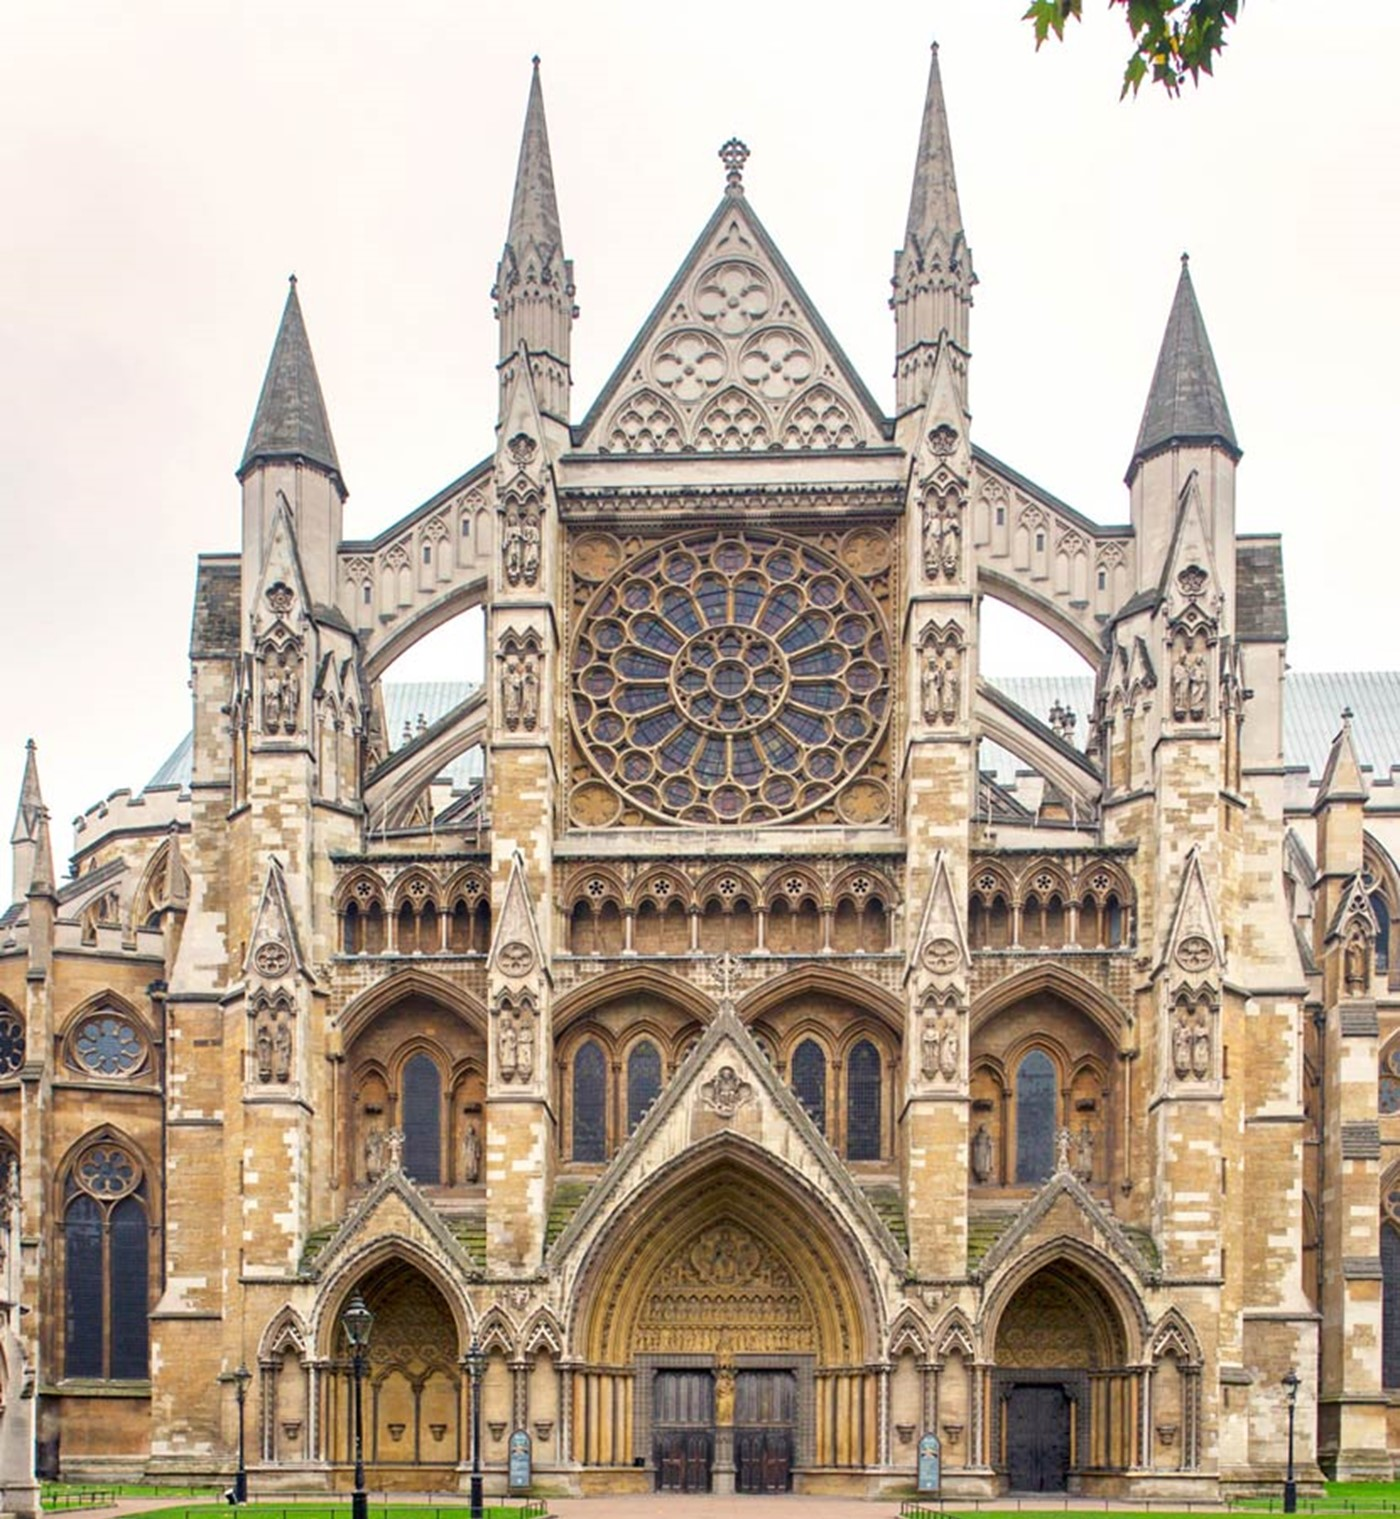 north-front-westminster-abbey.jpg